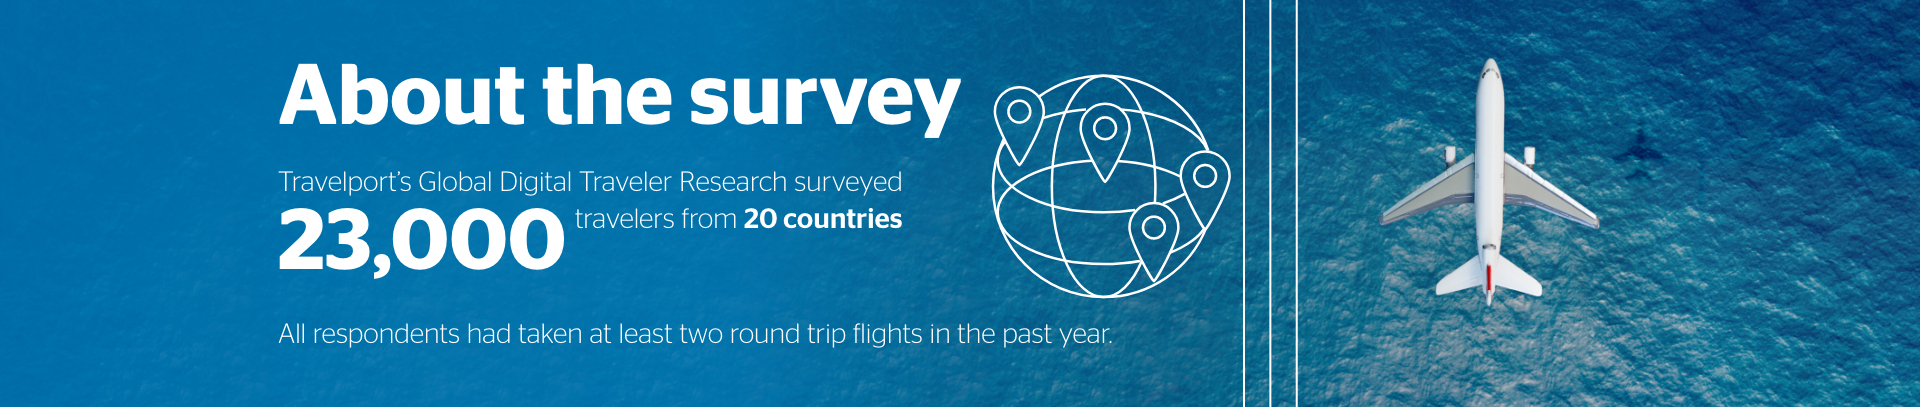 About the survey. Travelport's Global Digitial Traveler Research surveyed 23,000 travelers from 20 countries. All respondents had taken at least two round trip flights in the past year.